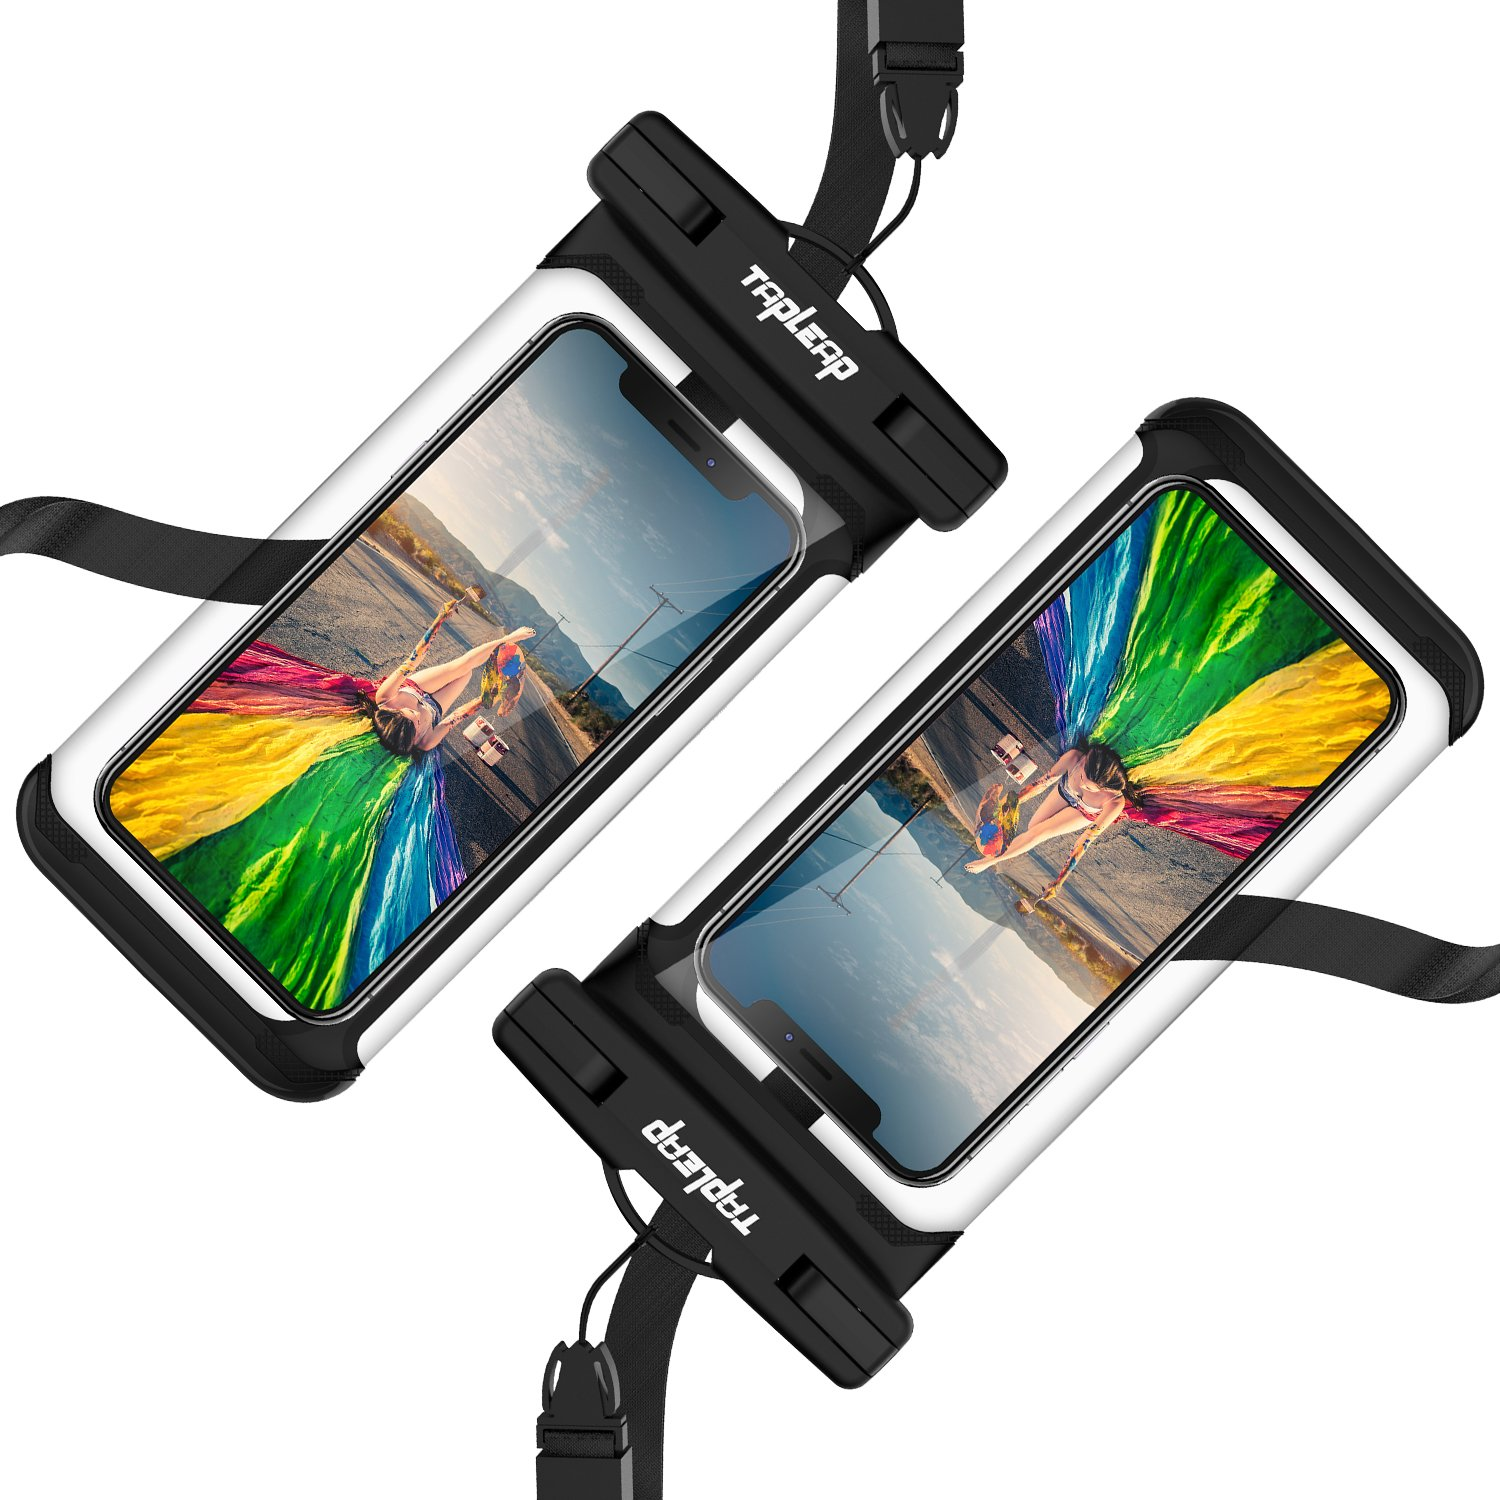 Tapleap Waterproof Cell Phone Pouch Case for Kayaking Cruise Snorkeling (2 Pcs) Universal Dry Bag for iPhone X/8/7/6s/6 (Plus), Samsung Galaxy S9/S9 Note 8, LG/Pixel/Moto, Smartphone up to 6.0''